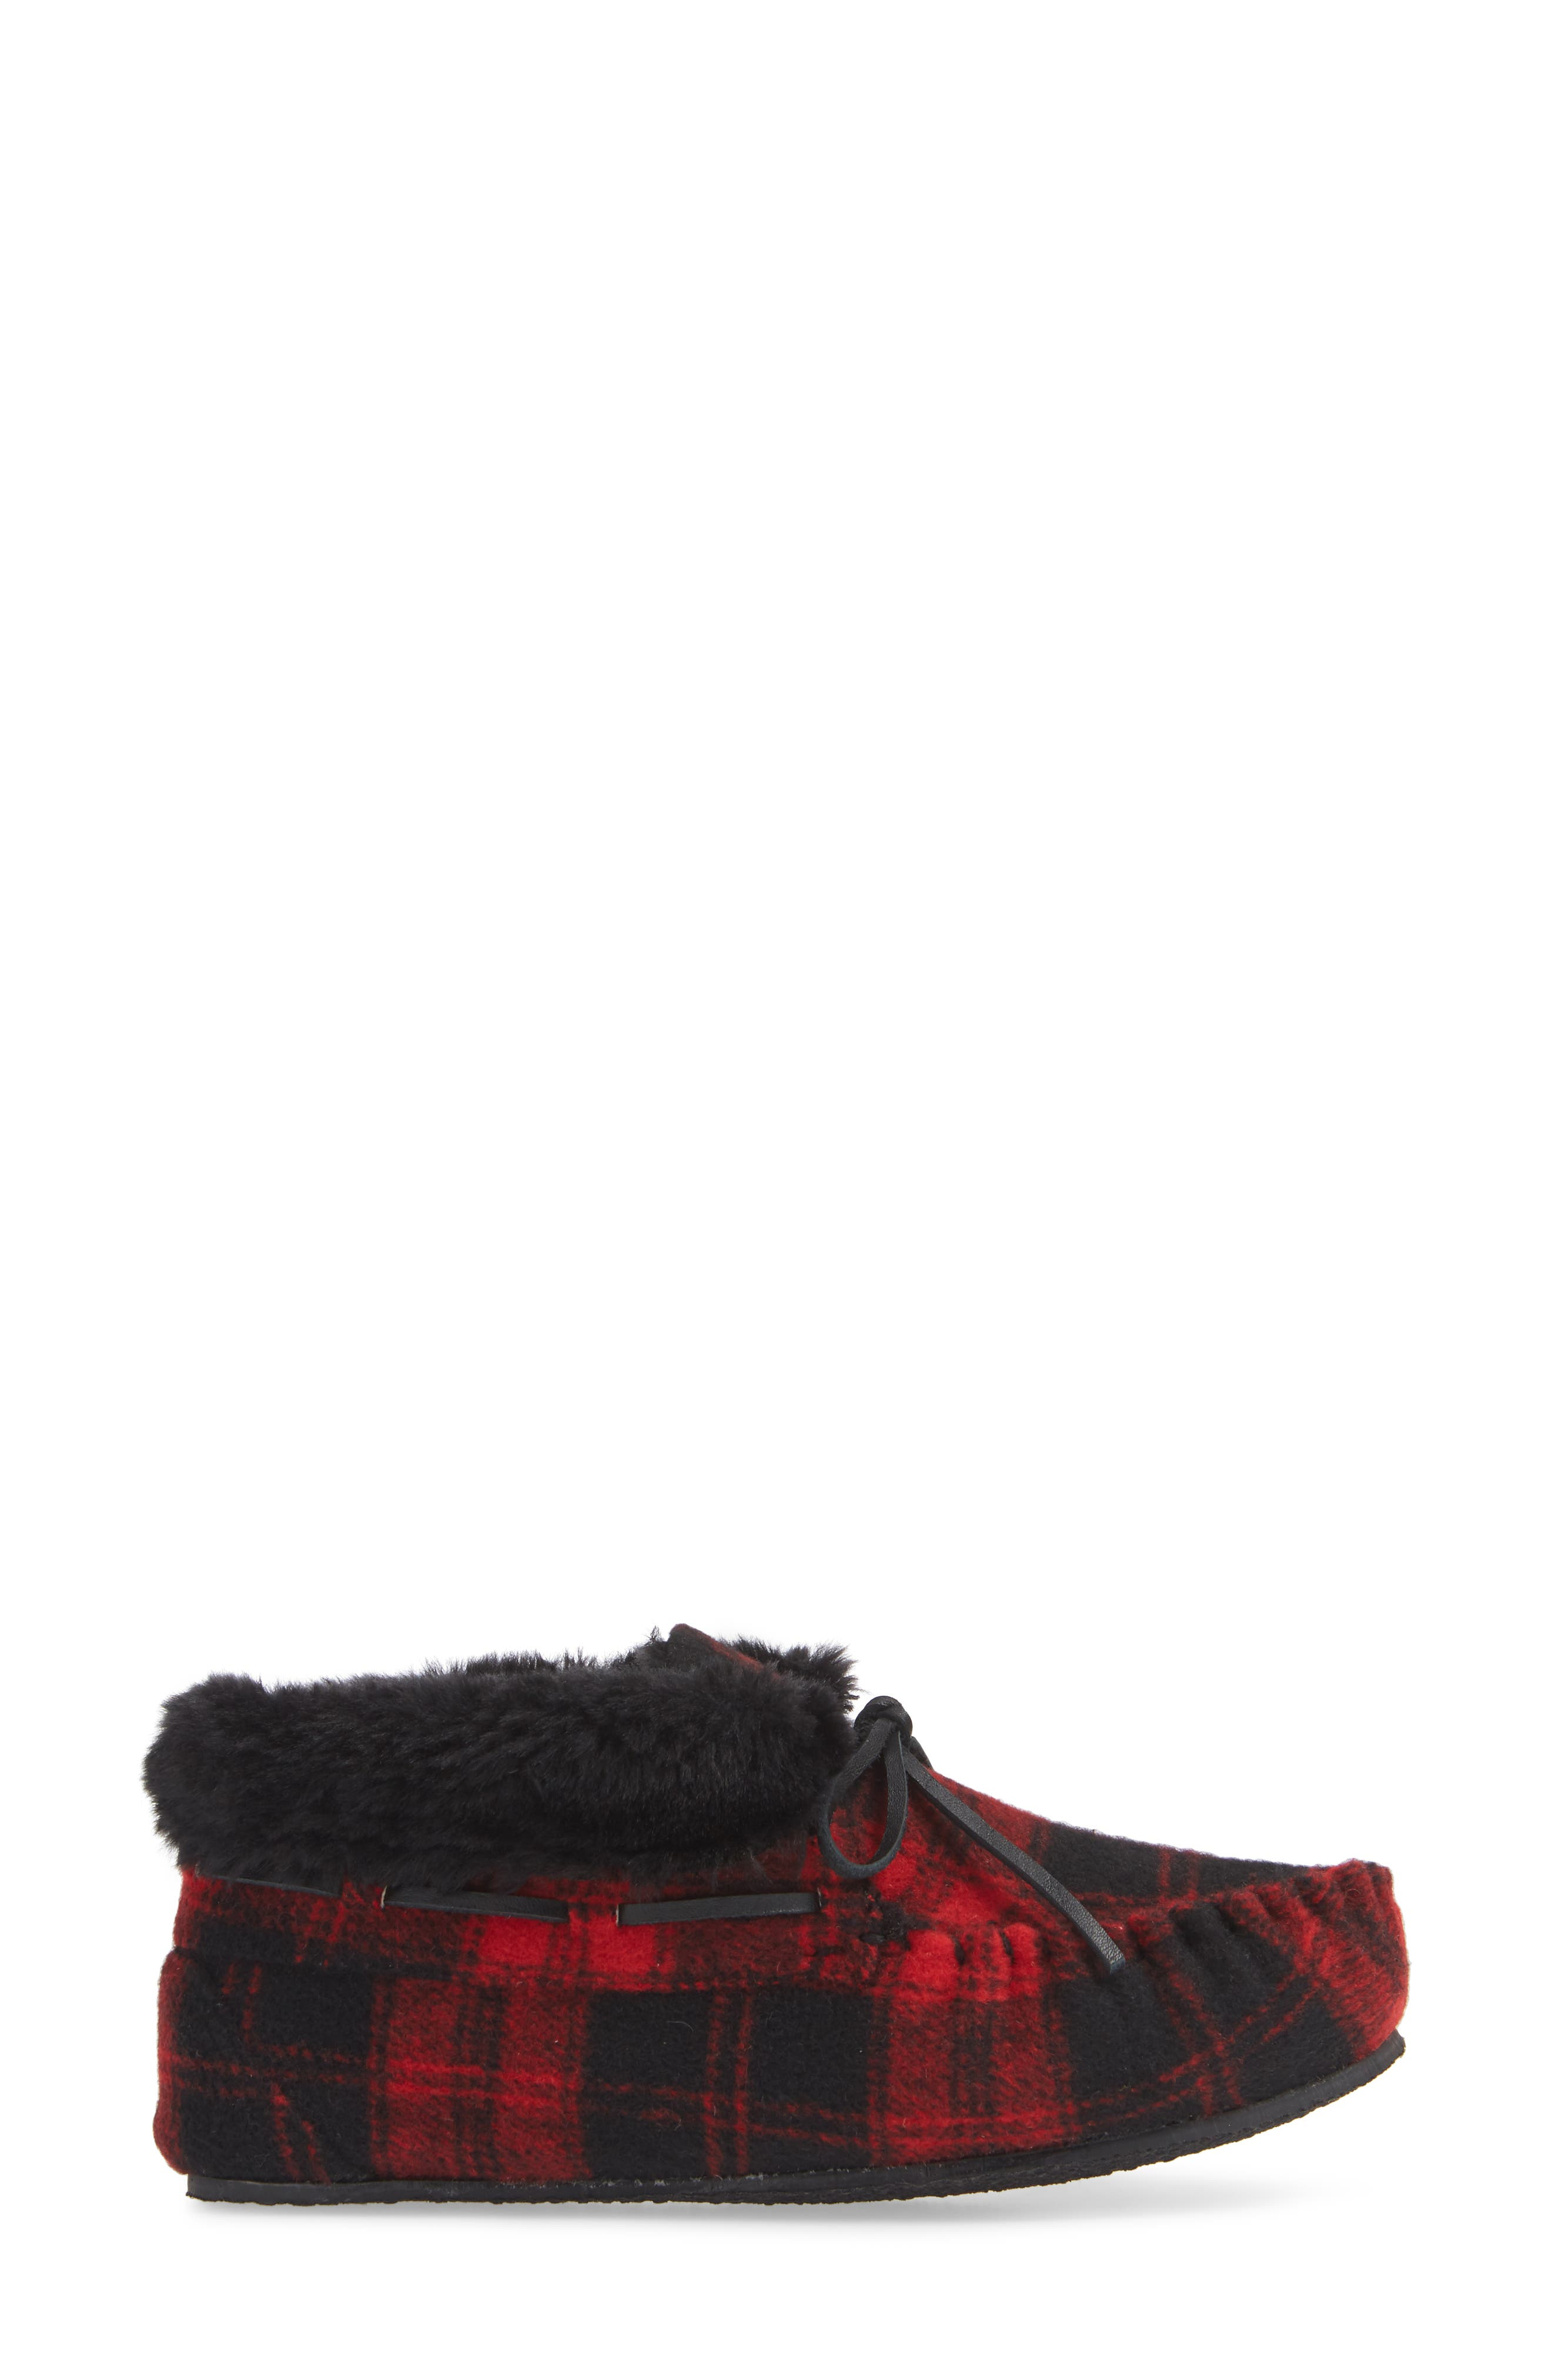 MINNETONKA,                             'Chrissy' Slipper Bootie,                             Alternate thumbnail 3, color,                             RED PLAID FABRIC